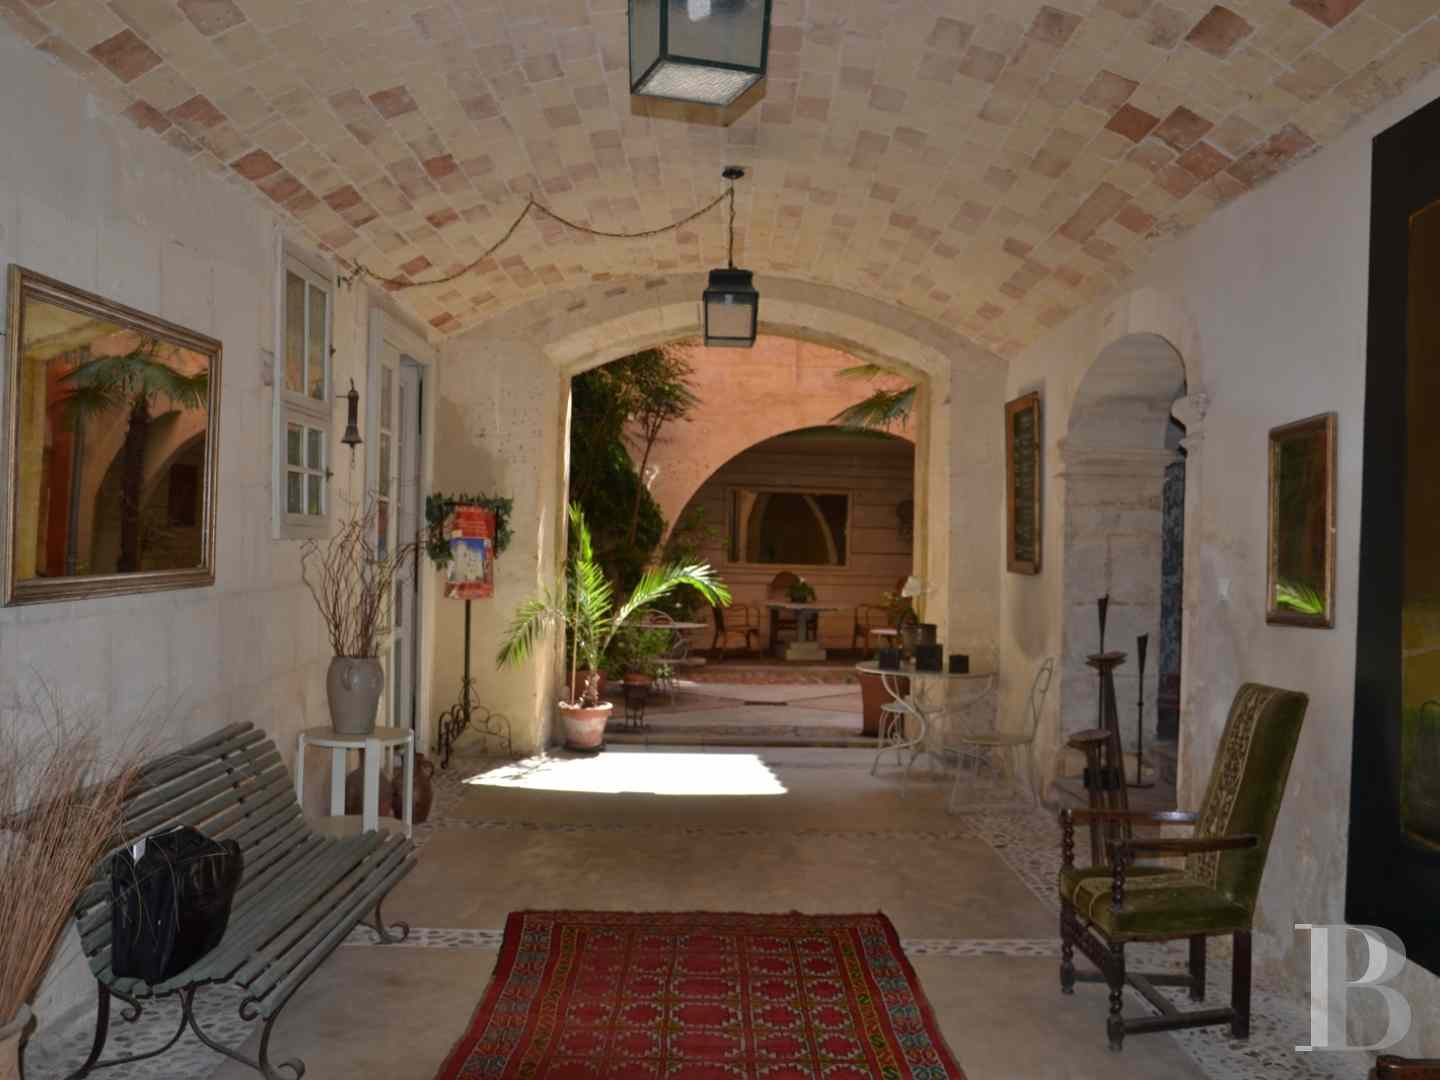 property for sale France languedoc roussillon residences mansion - 4 zoom